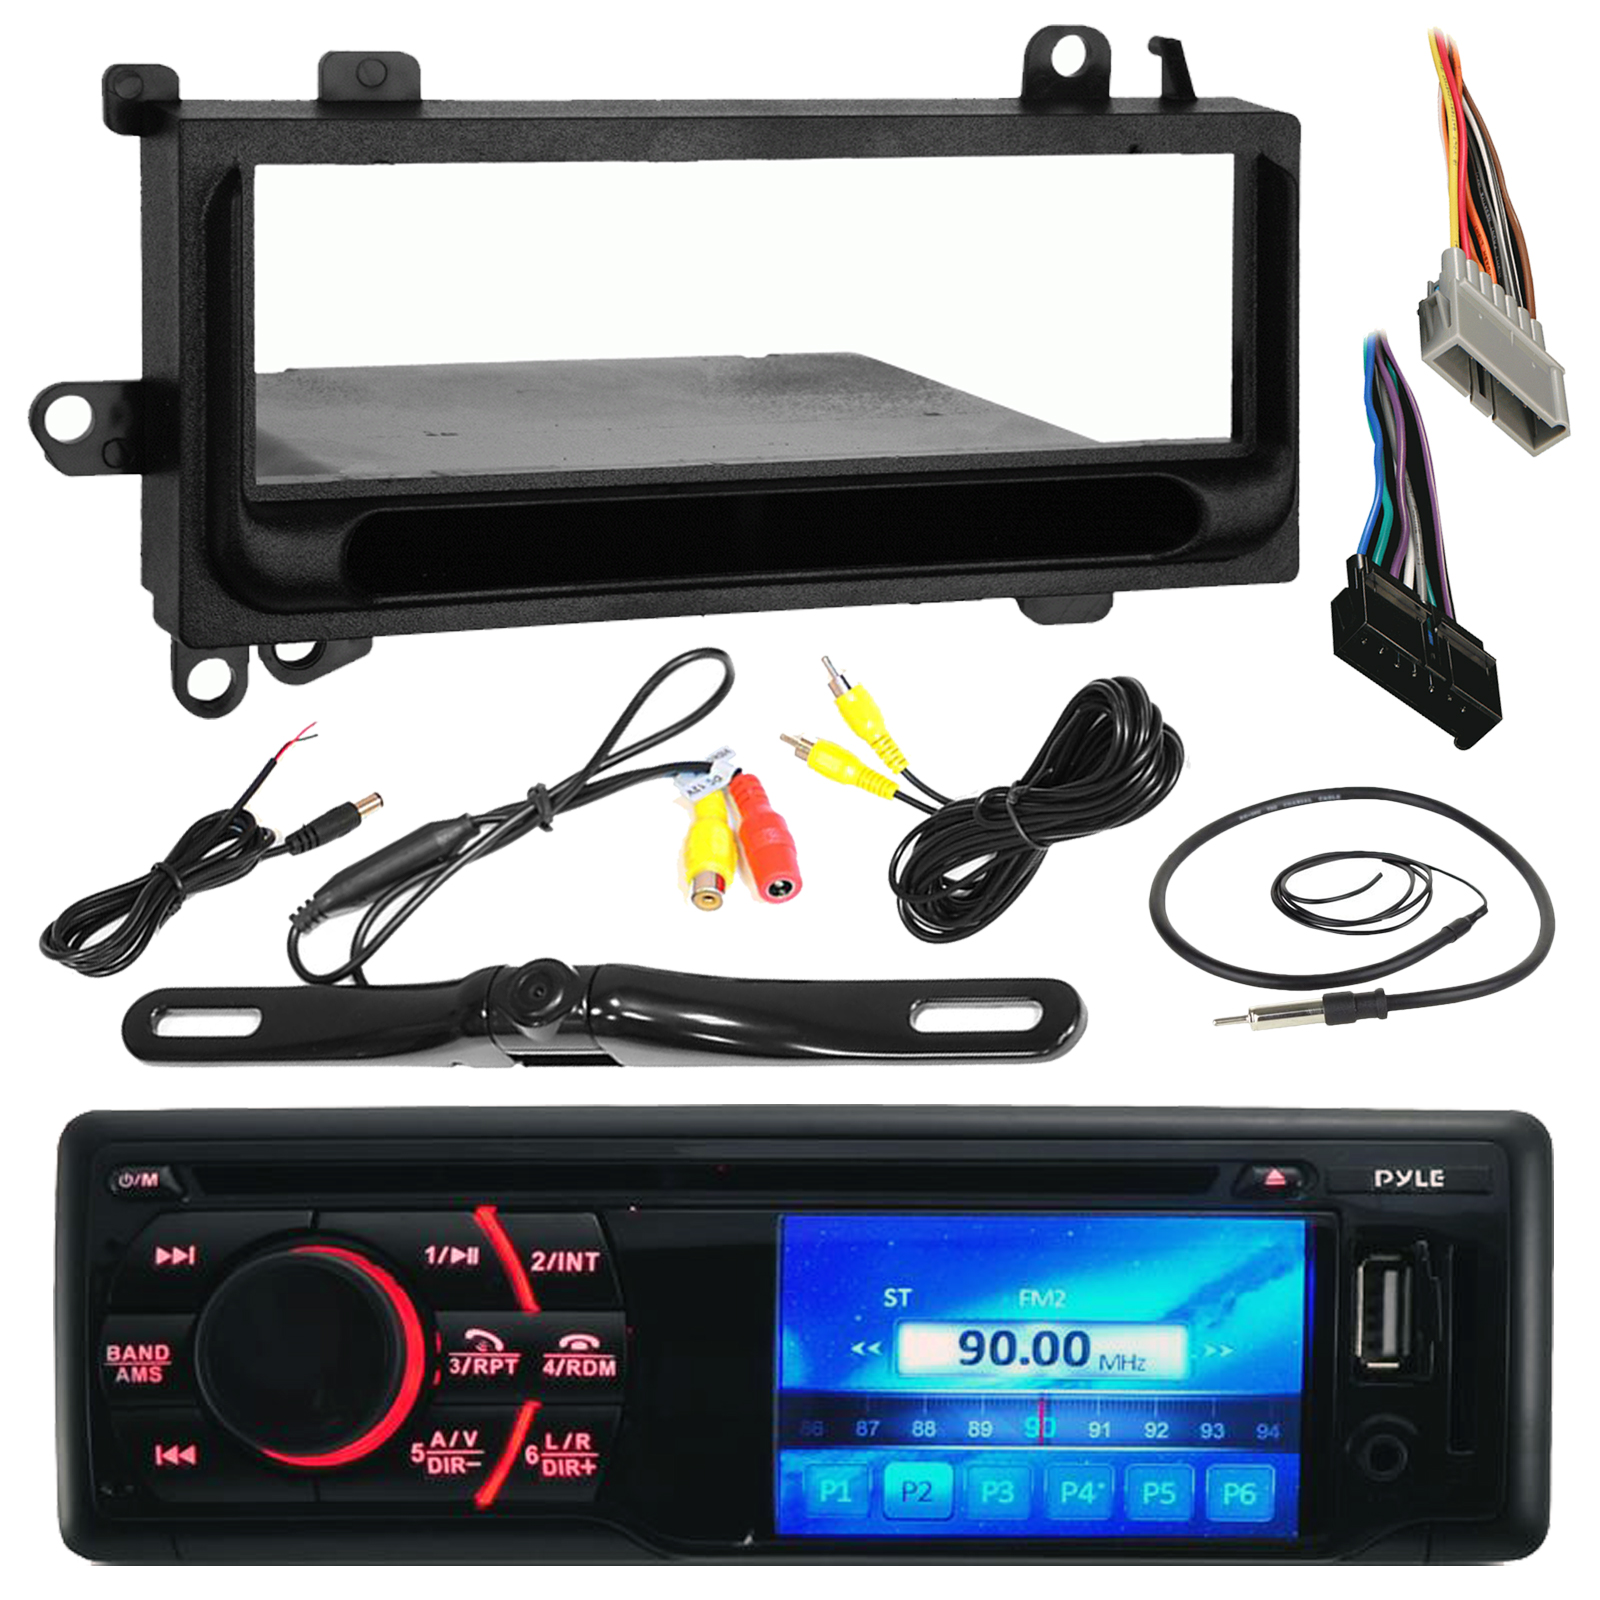 pyle pld34mub 3'' lcd cd am/fm bluetooth receiver bundle